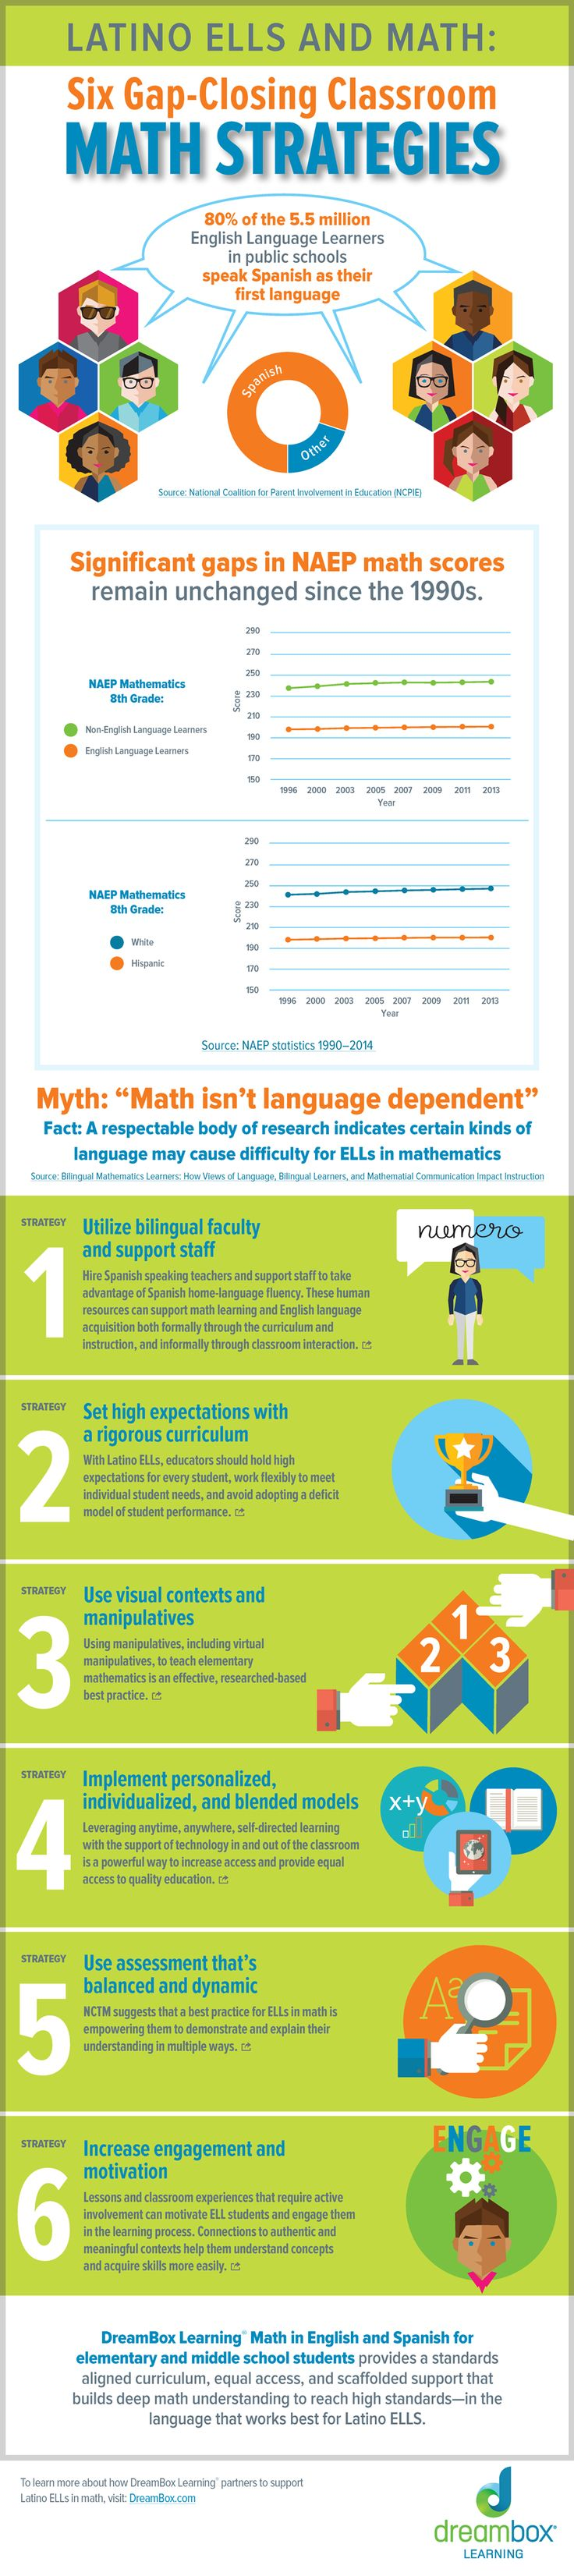 Latino Ells and Math: Six Gap-Closing Classroom Math Strategies Infographic http://www.dreambox.com/blog/latino-ell-infographic?utm_source=pinterest&utm_medium=social-media&utm_campaign=Q1-FEB-2015-WWW-Infographic-Latino-ELL-Math